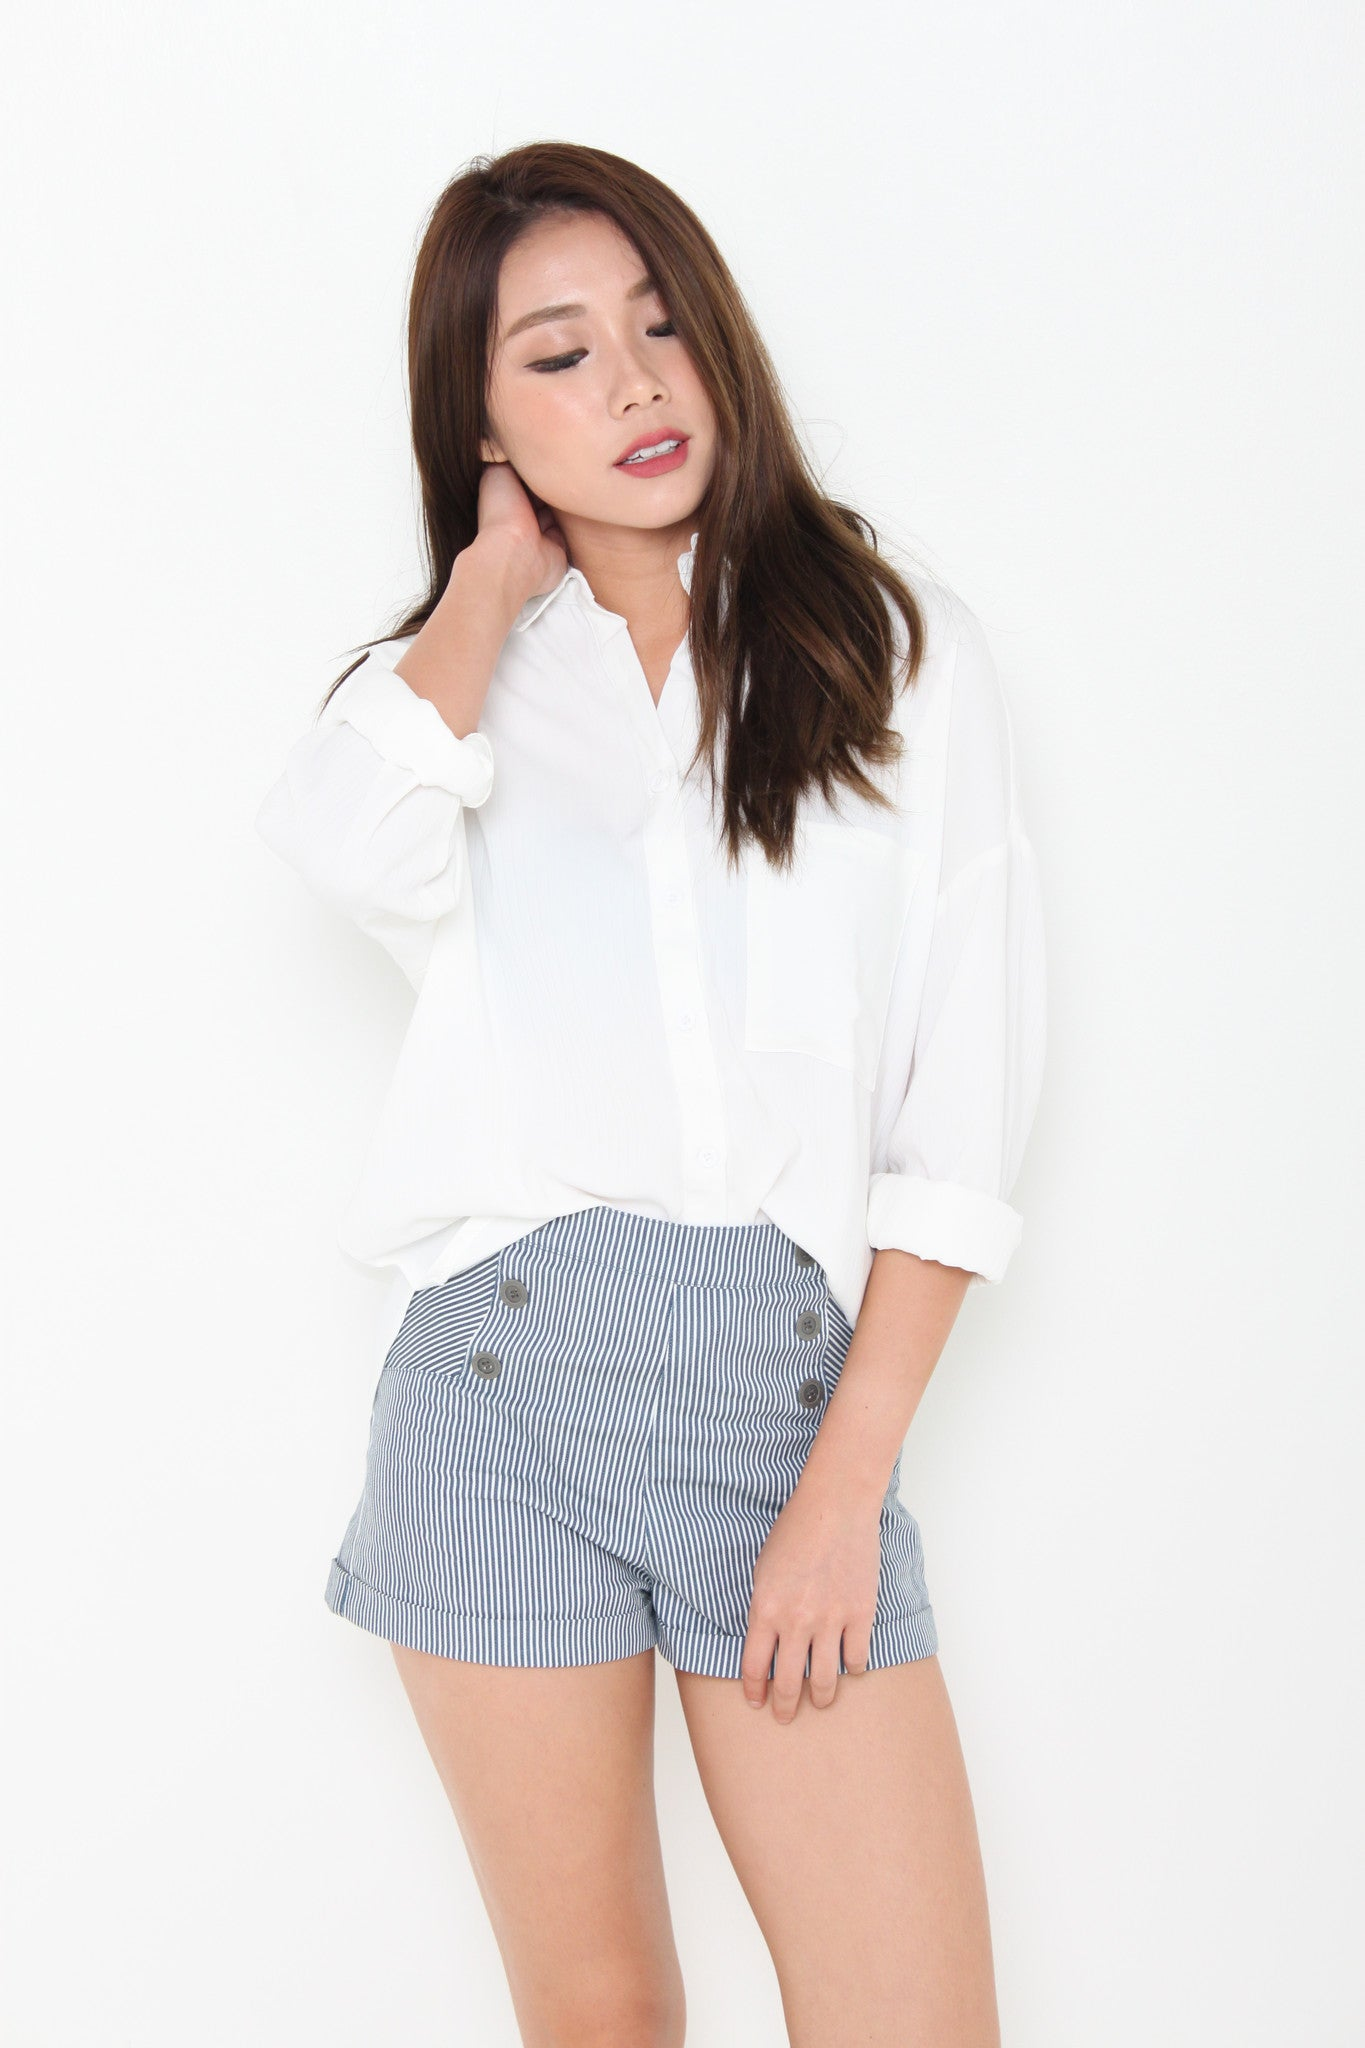 Venus Texture Line Pocket Shirt in White